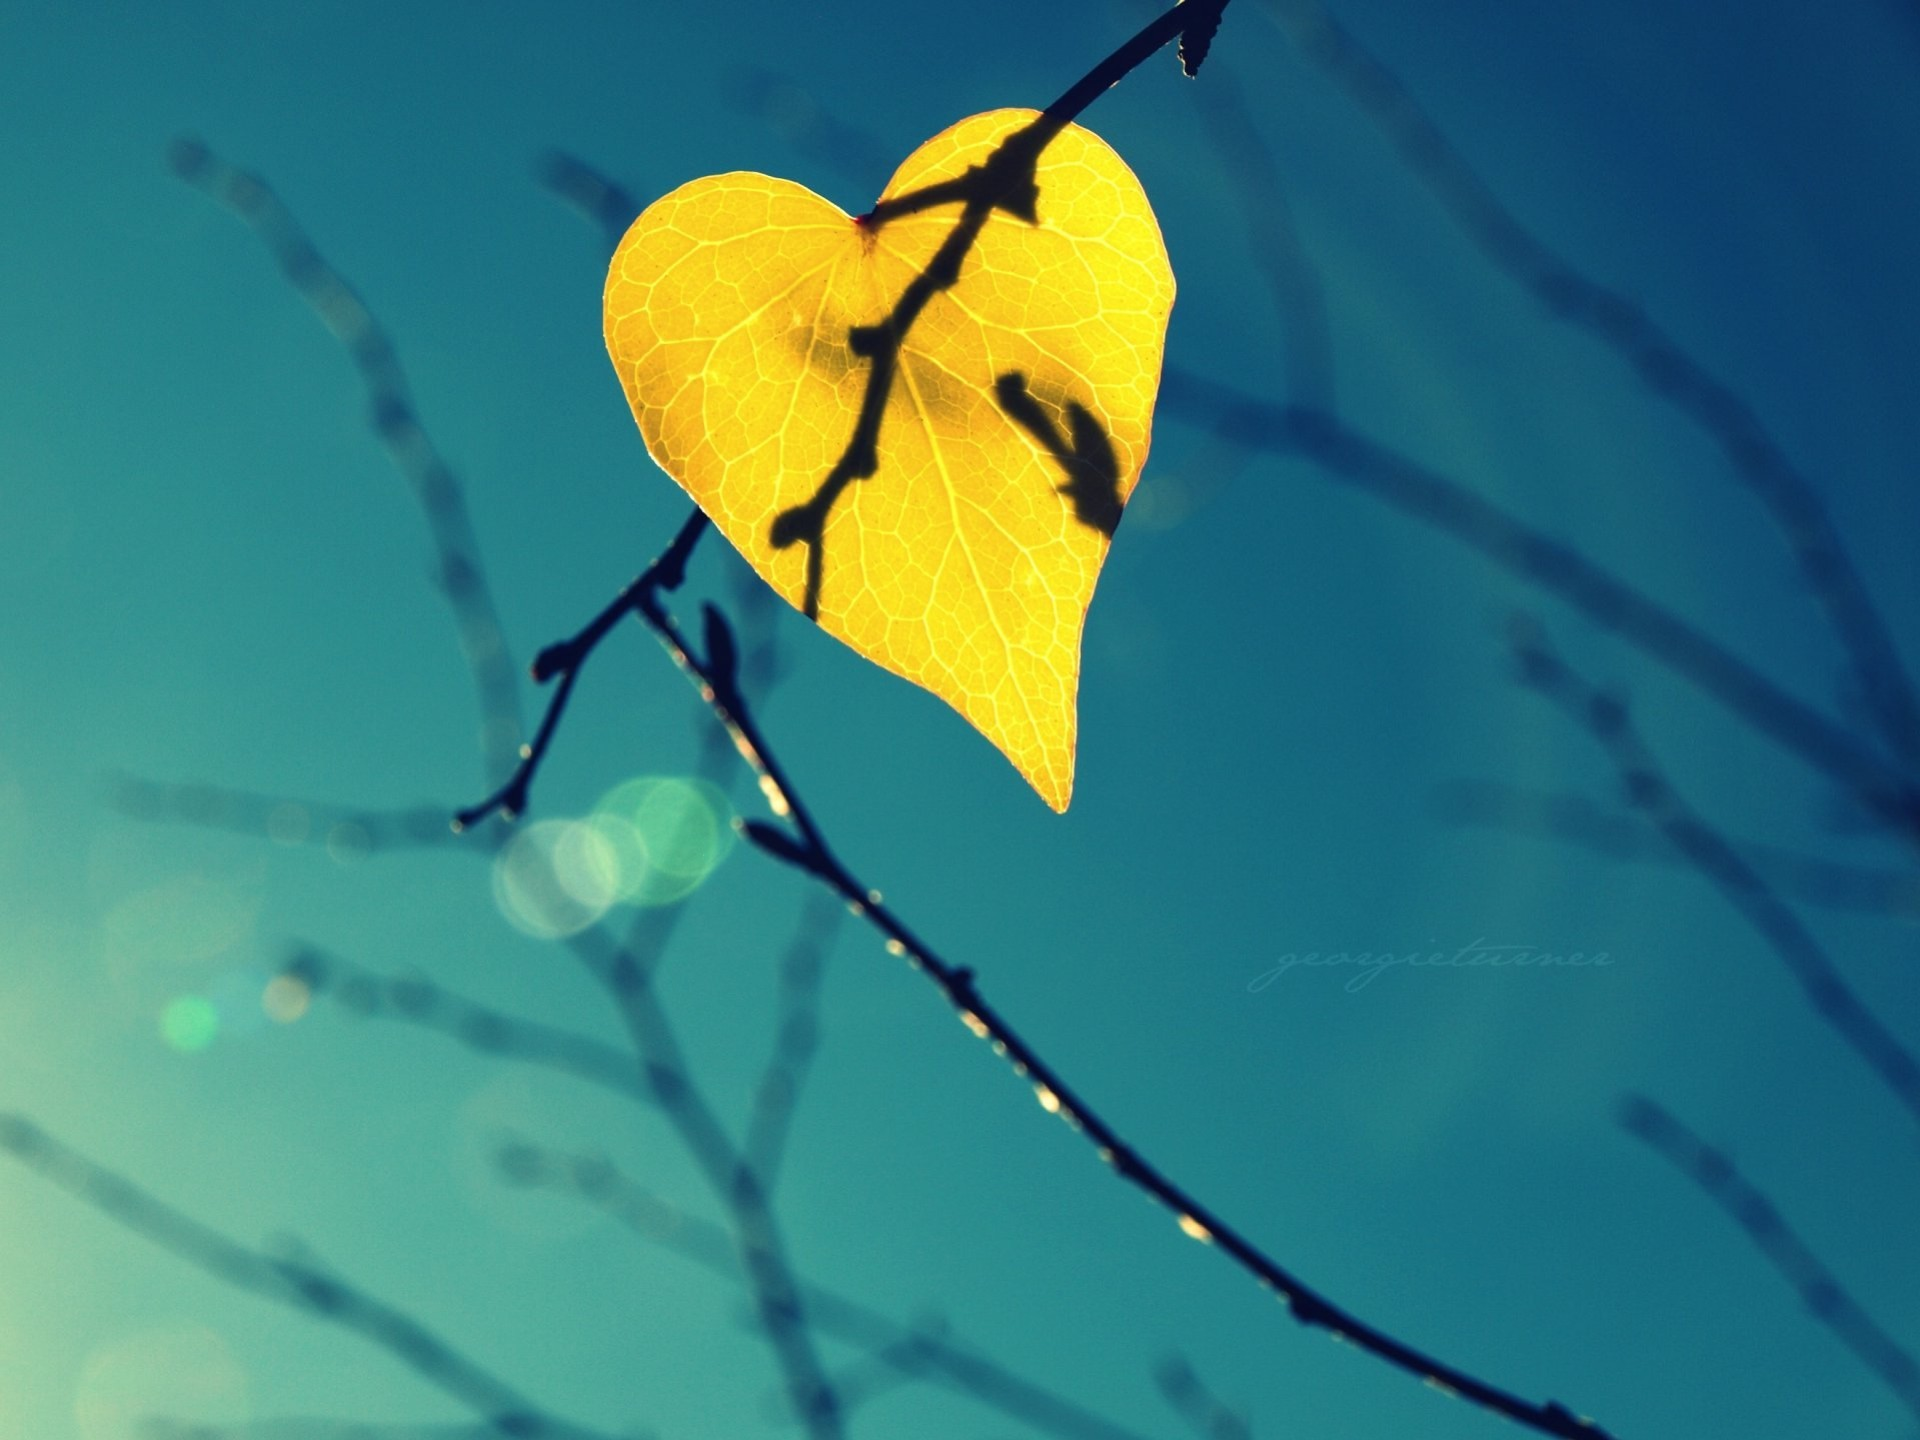 Image: Sheet, yellow, branches, fall, form, heart, heaven, bokeh, close-up, background